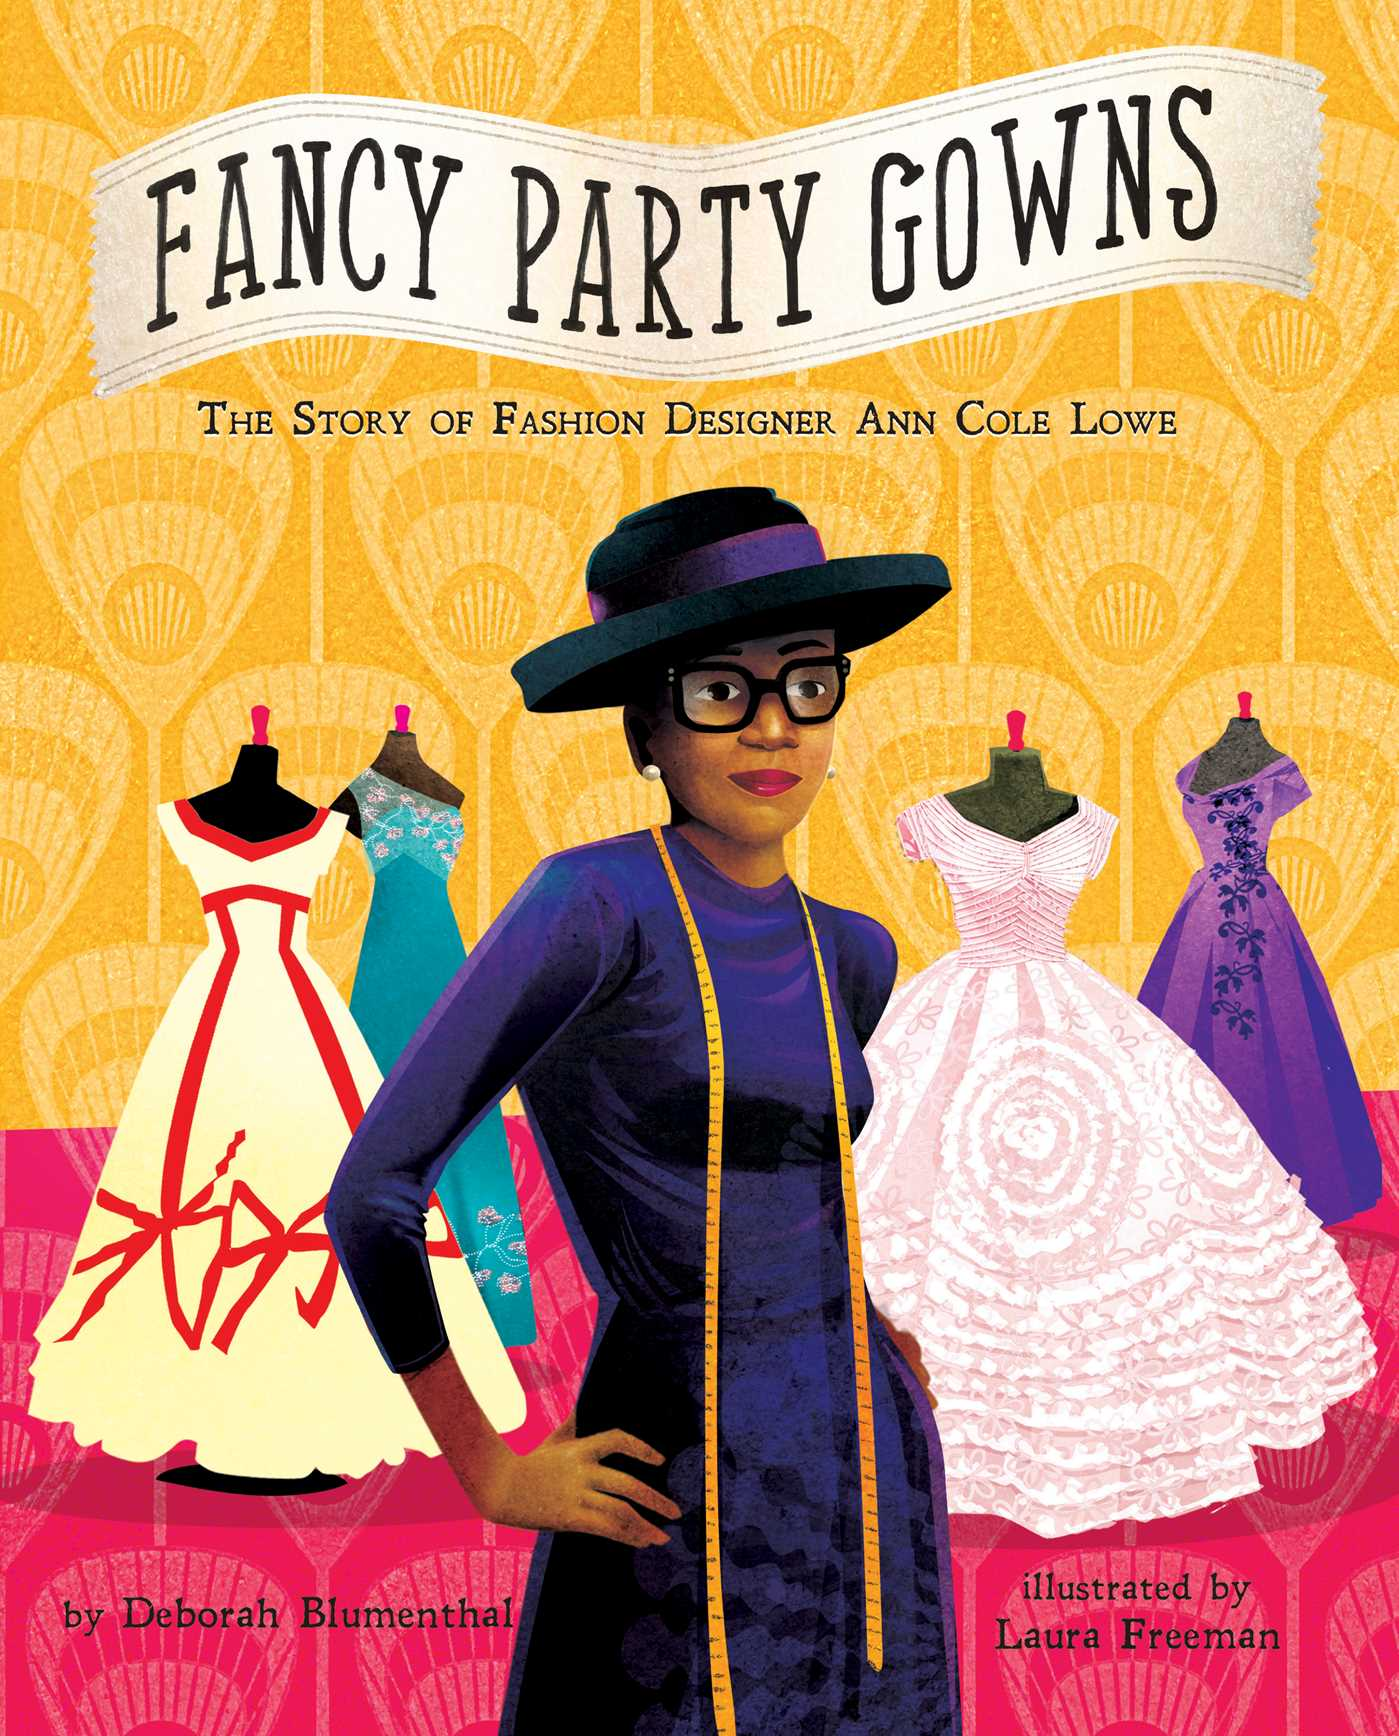 Fancy party gowns the story of fashion designer ann cole lowe 9781499802399 hr